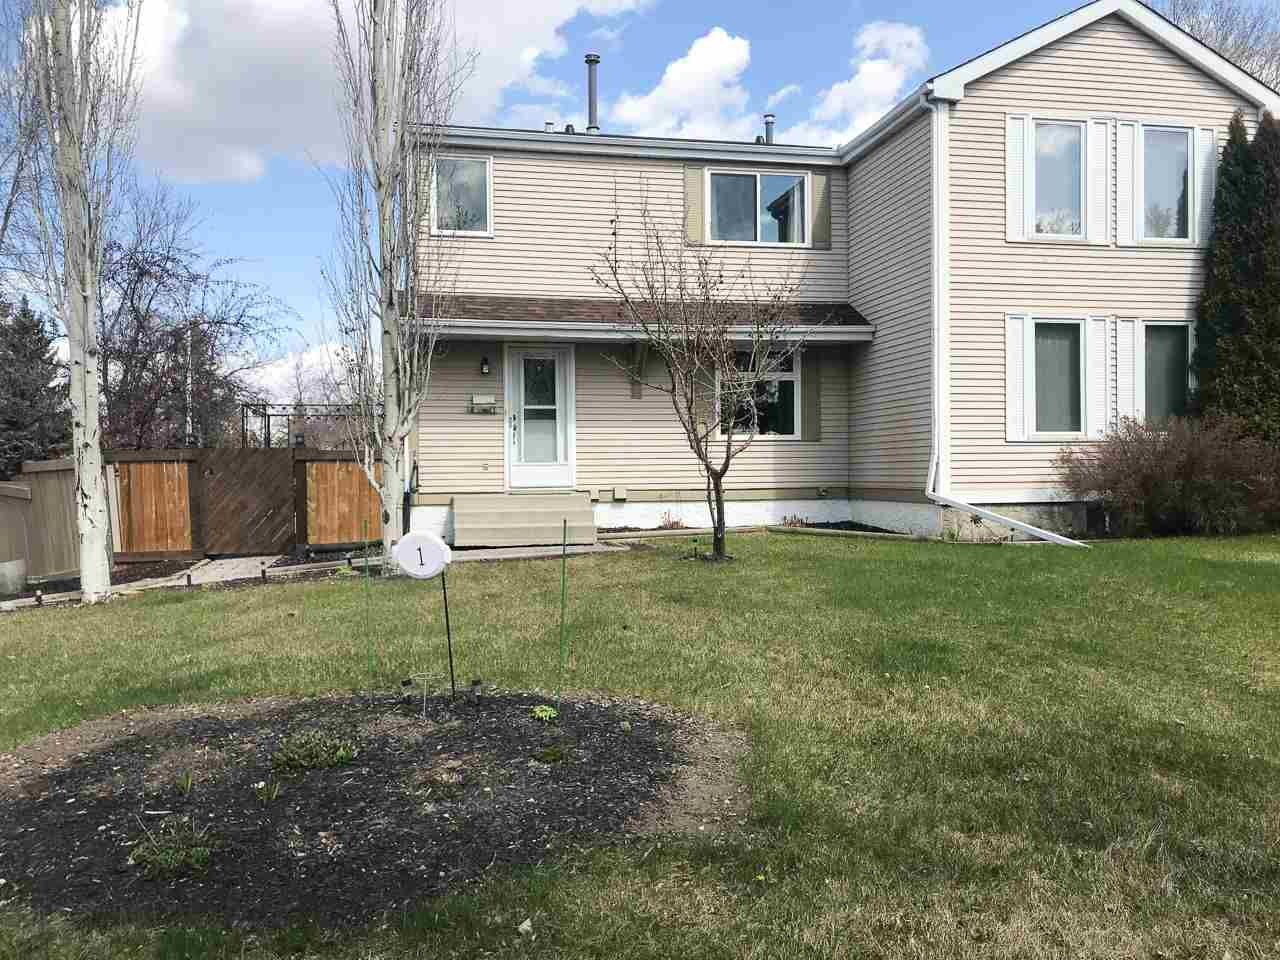 Main Photo: 1 WINDSOR Crescent: St. Albert House Half Duplex for sale : MLS®# E4150718